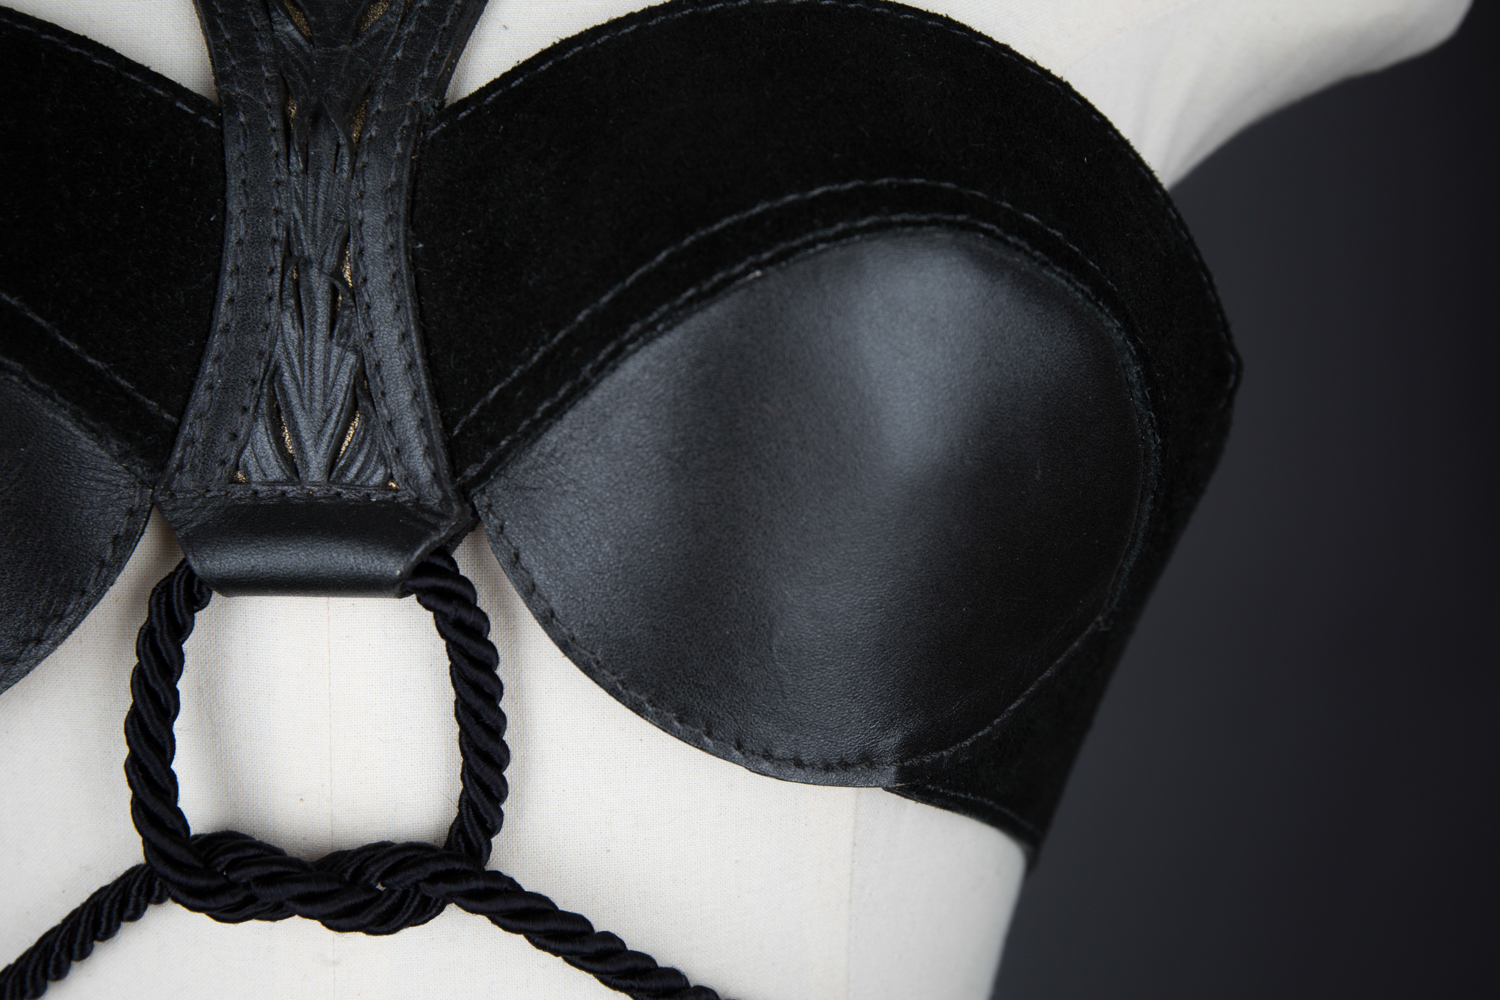 'Yatagarasu' Tooled Leather Bra by Cristiane Tano, 2015, Brazil. The Underpinnings Museum. Photography by Tigz Rice.